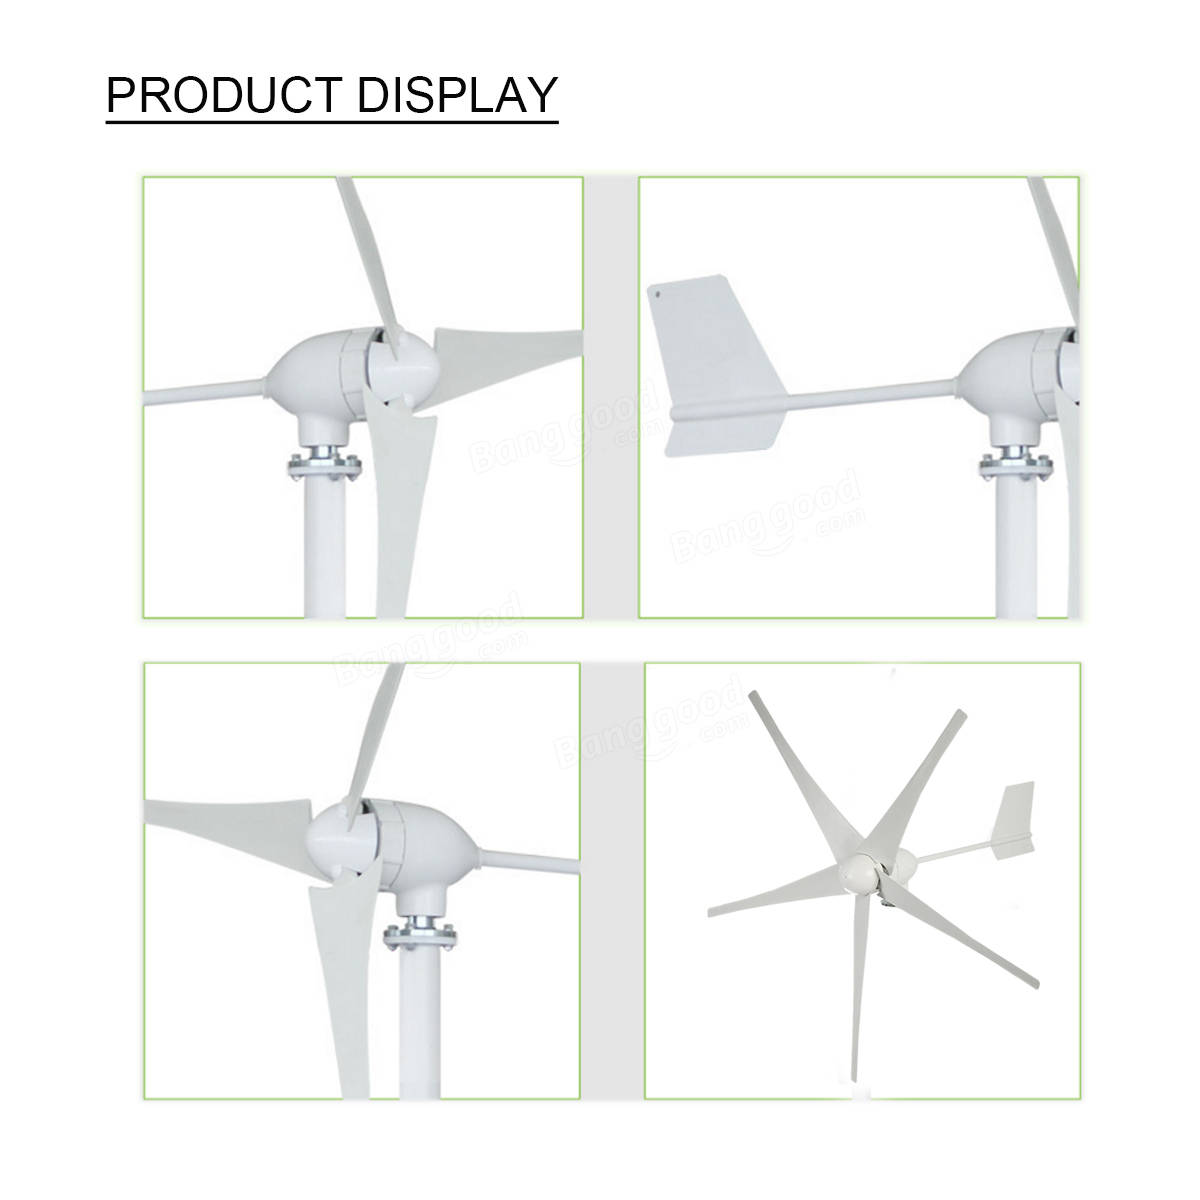 3 5 Blades 600W 24V 48V Small Horizontal Wind Turbine Generator Power Supply Kit